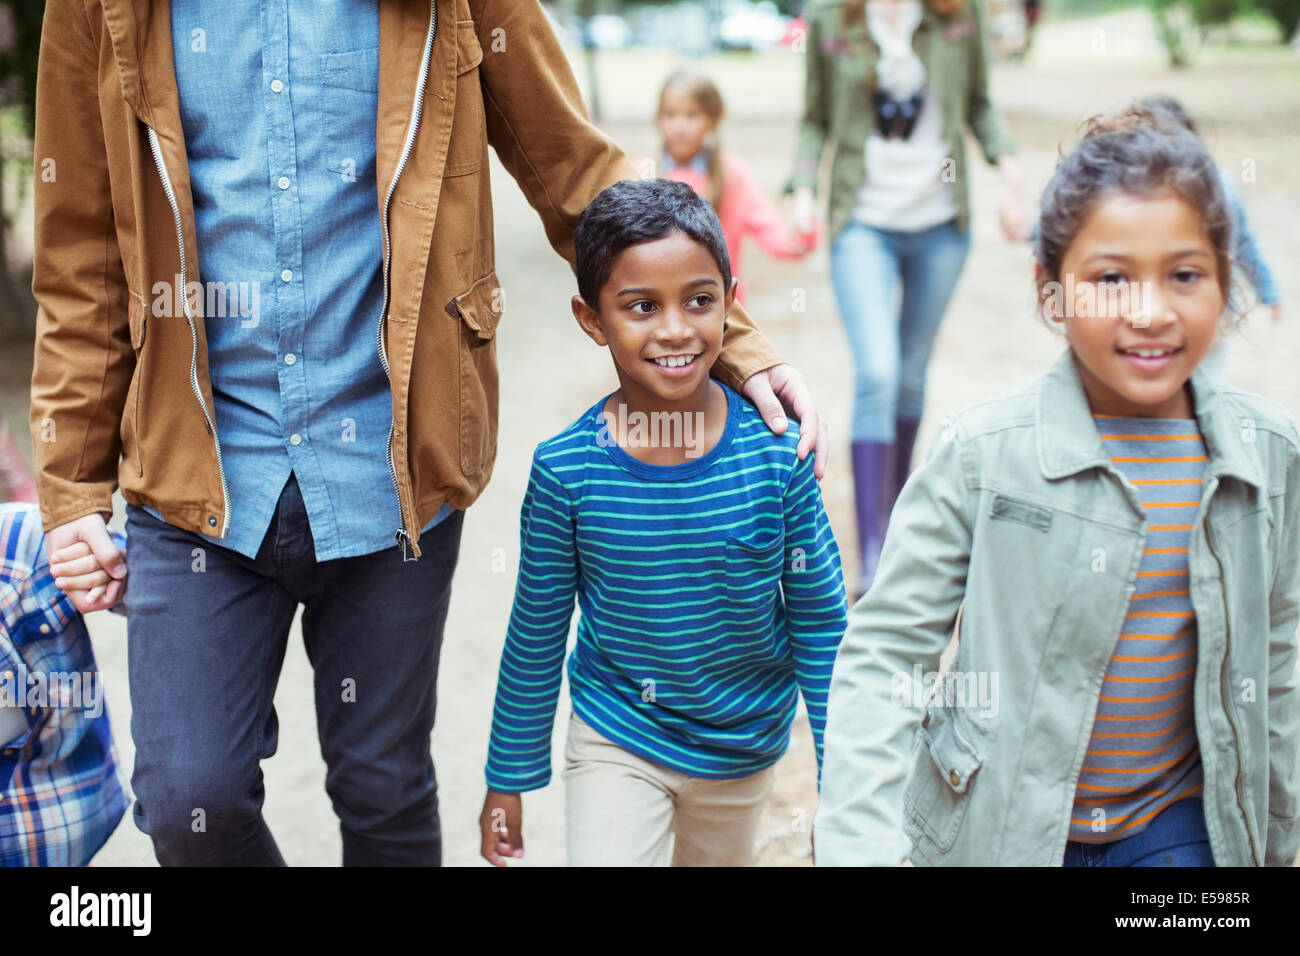 Students and teachers walking outdoors - Stock Image